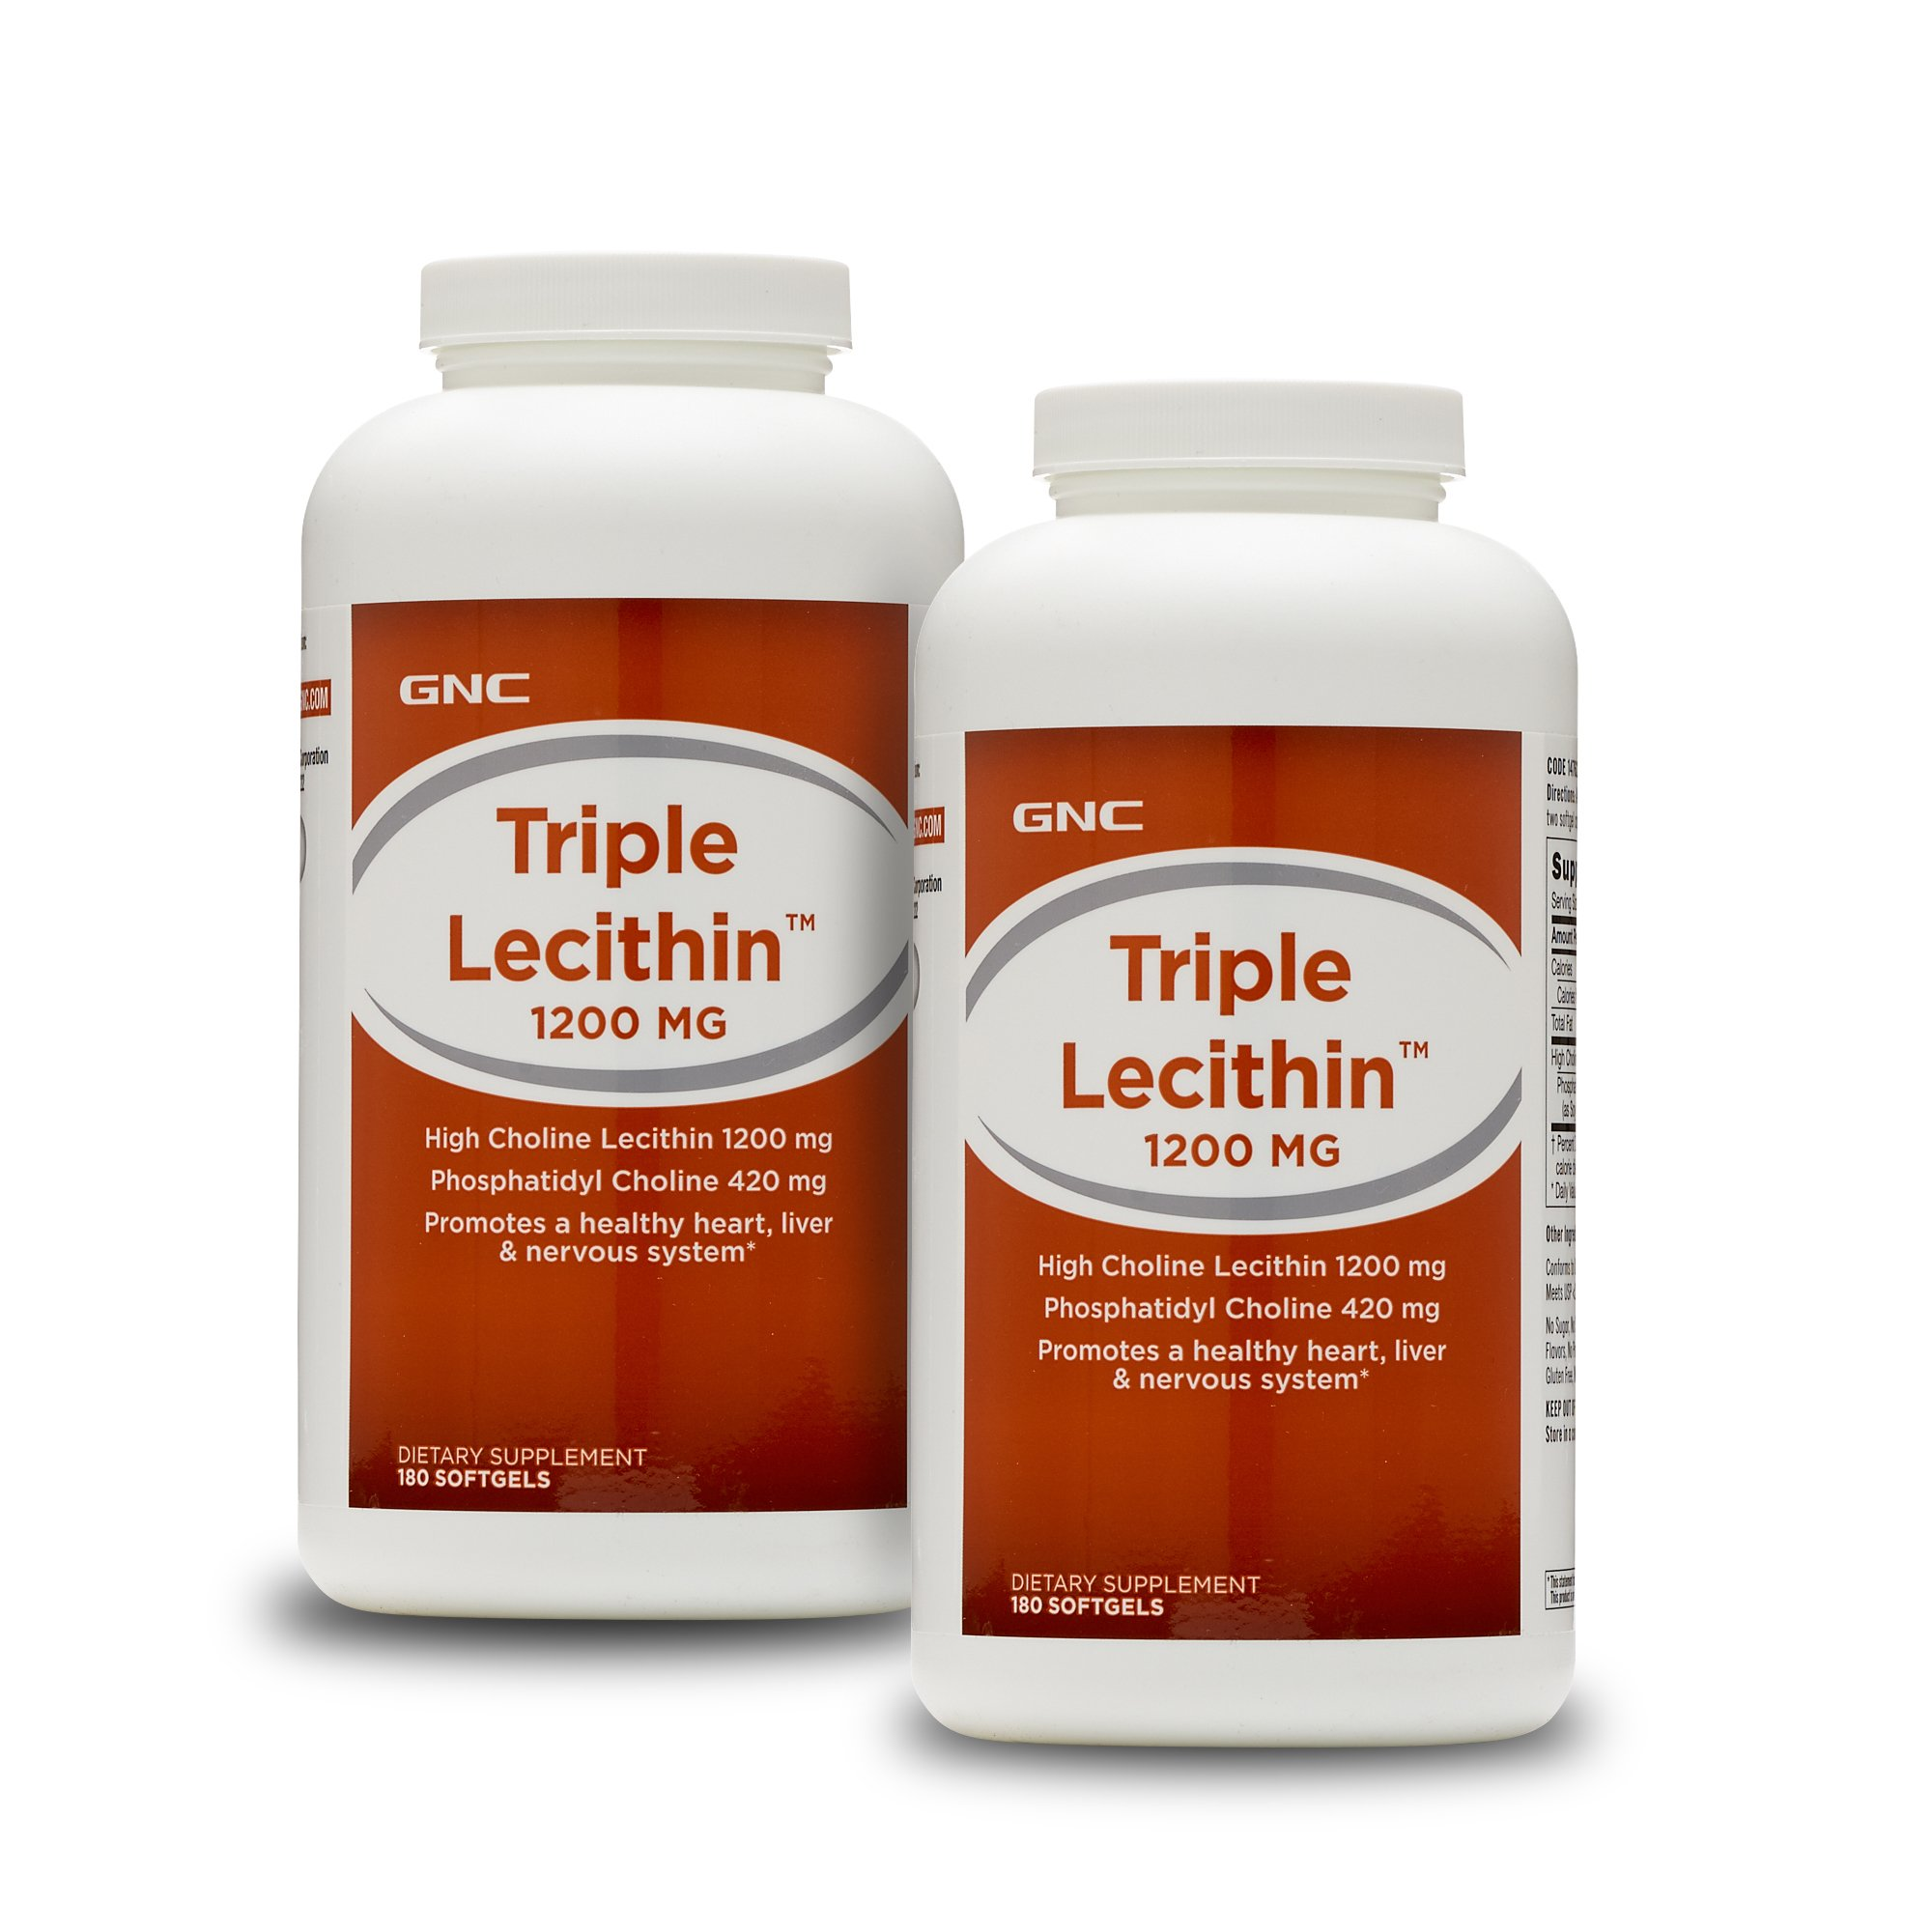 GNC Triple Lecithin 1200 MG Twin Pack by GNC